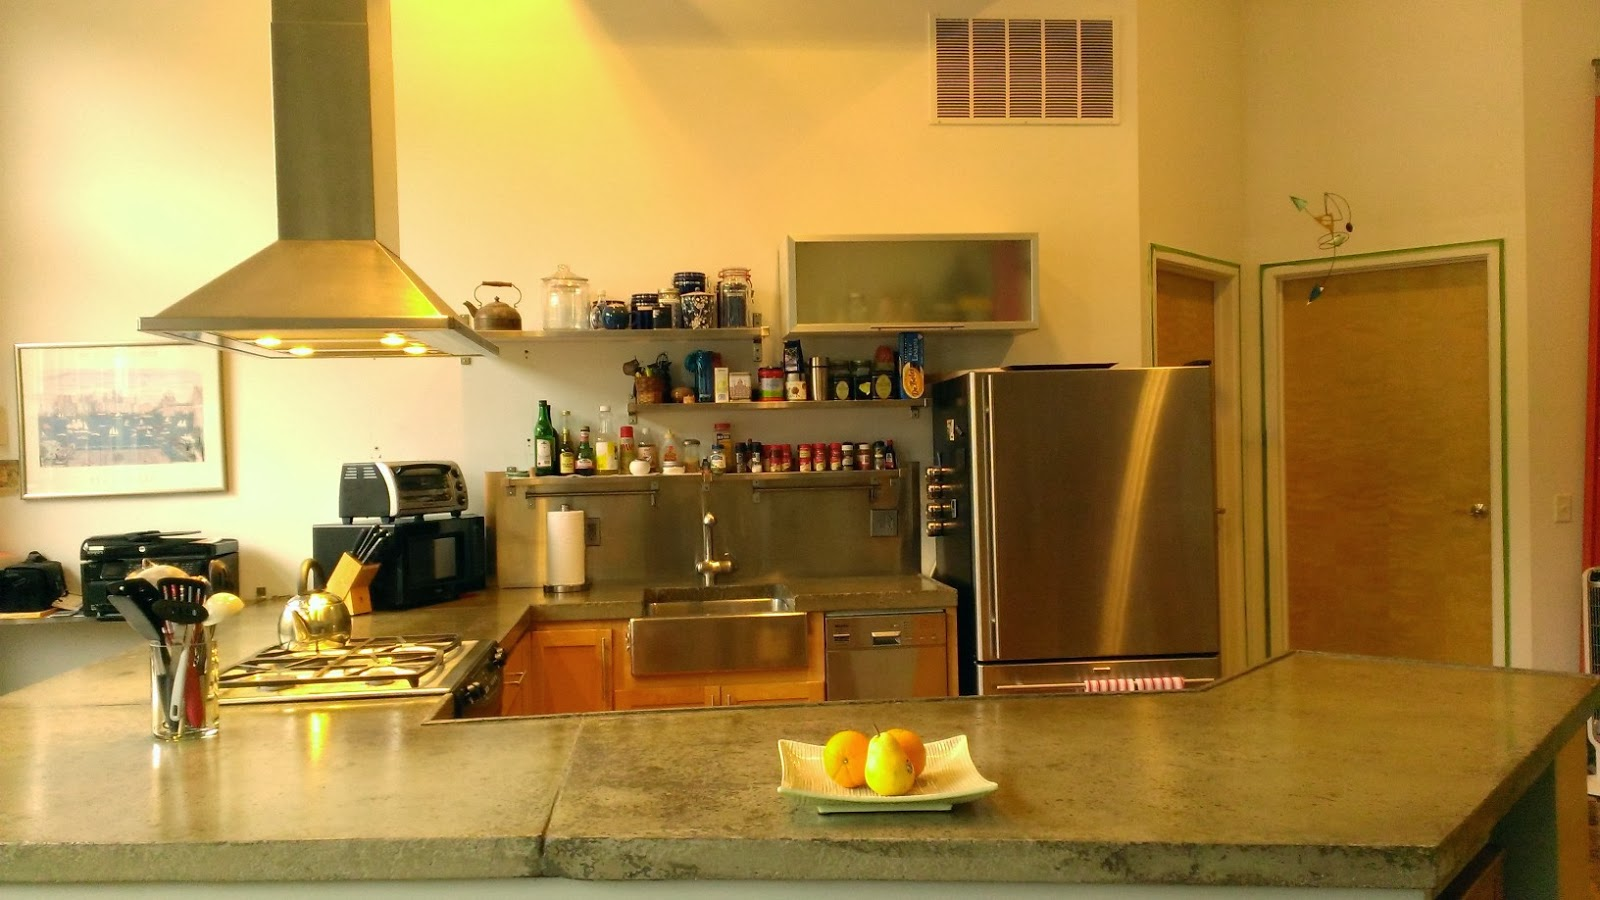 Upscale Kitchen Appliances Welcome To Artist Live Work Condo At Eclipse Mill